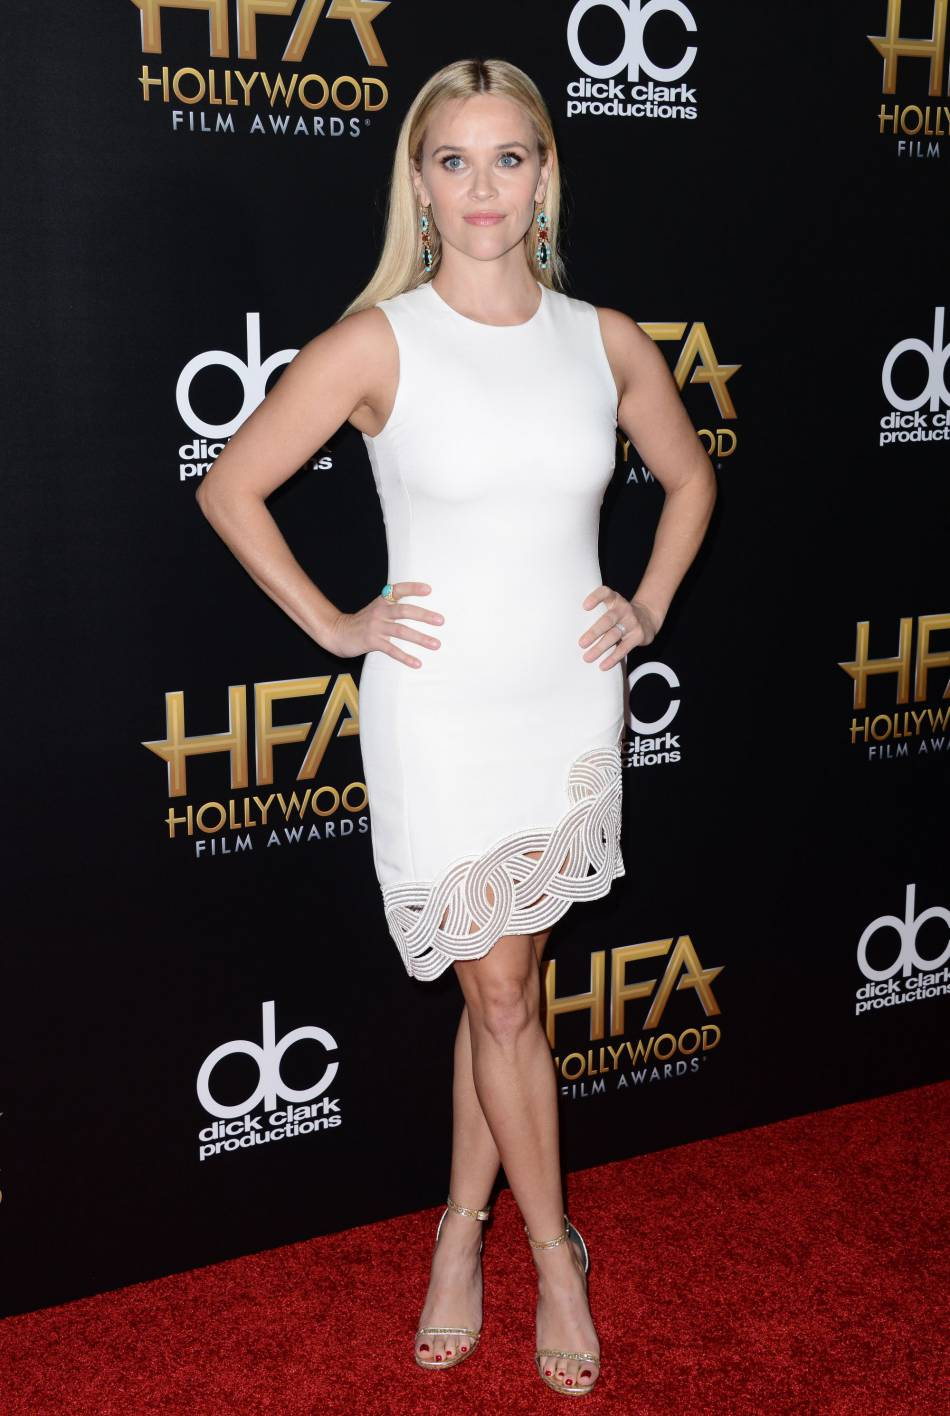 Reese Witherspoon sur le red carpet des Hollywood Film Awards le 1er novembre 2015 à Los Angeles.